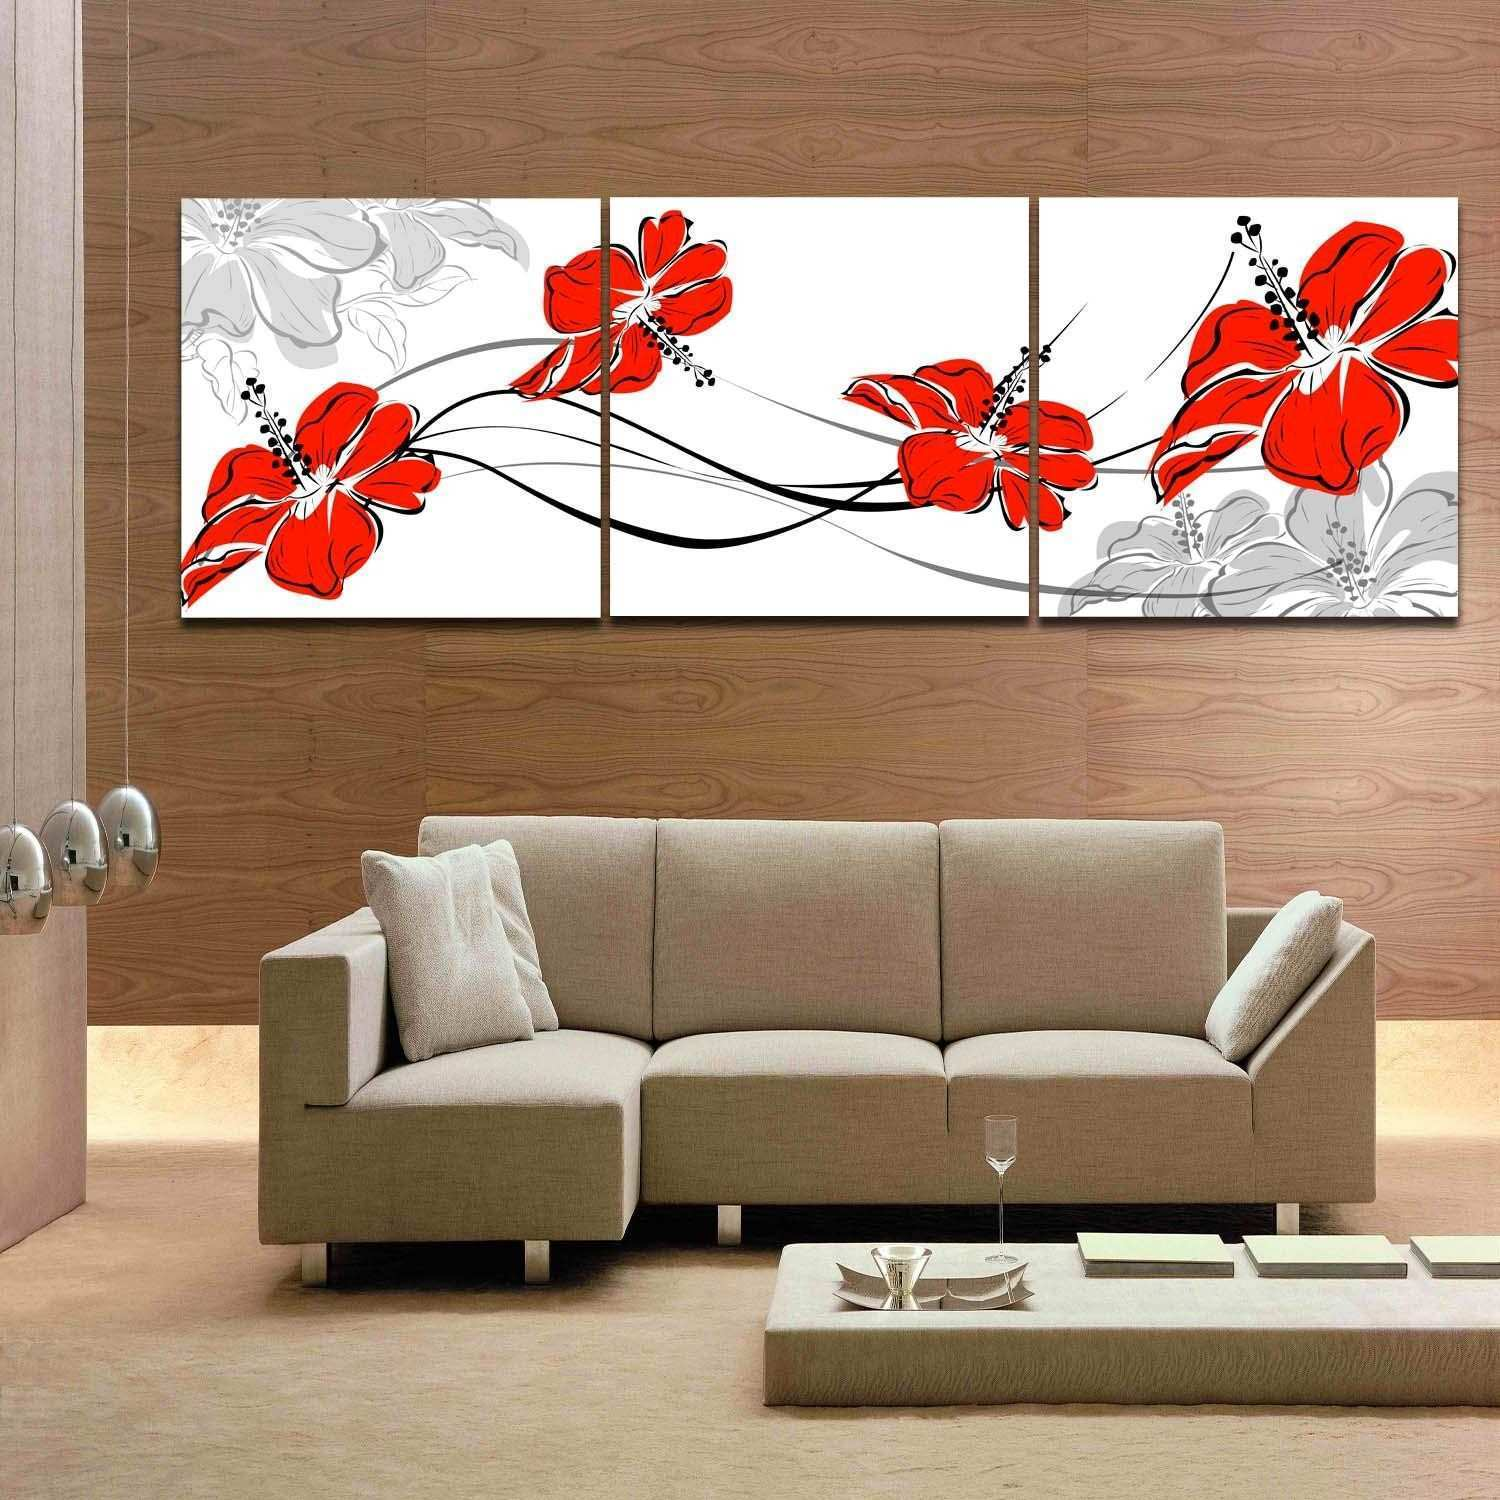 2018 Pink Blooming Flower Red Flower 3 Panels Beautiful Canvas Art